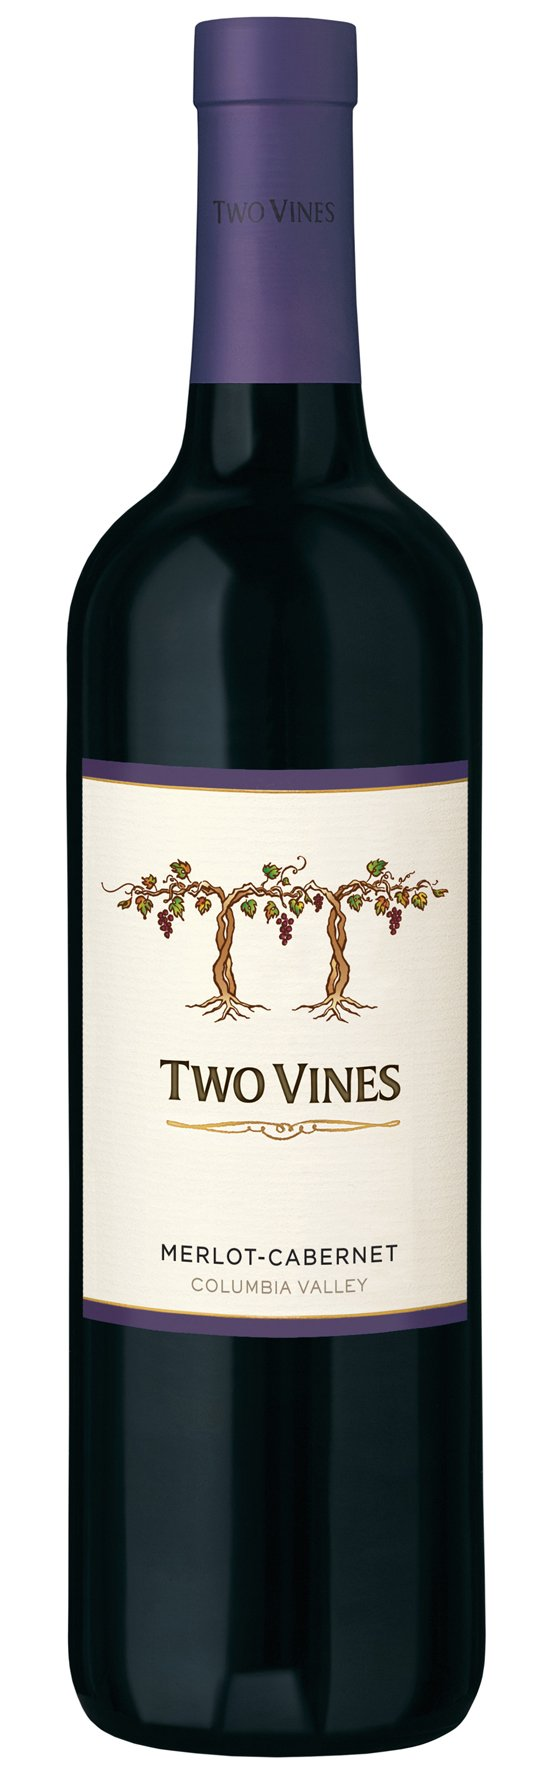 6x-075l-2013er-Columbia-Crest-Two-Vines-Merlot-Cabernet-Sauvignon-Washington-Rotwein-trocken